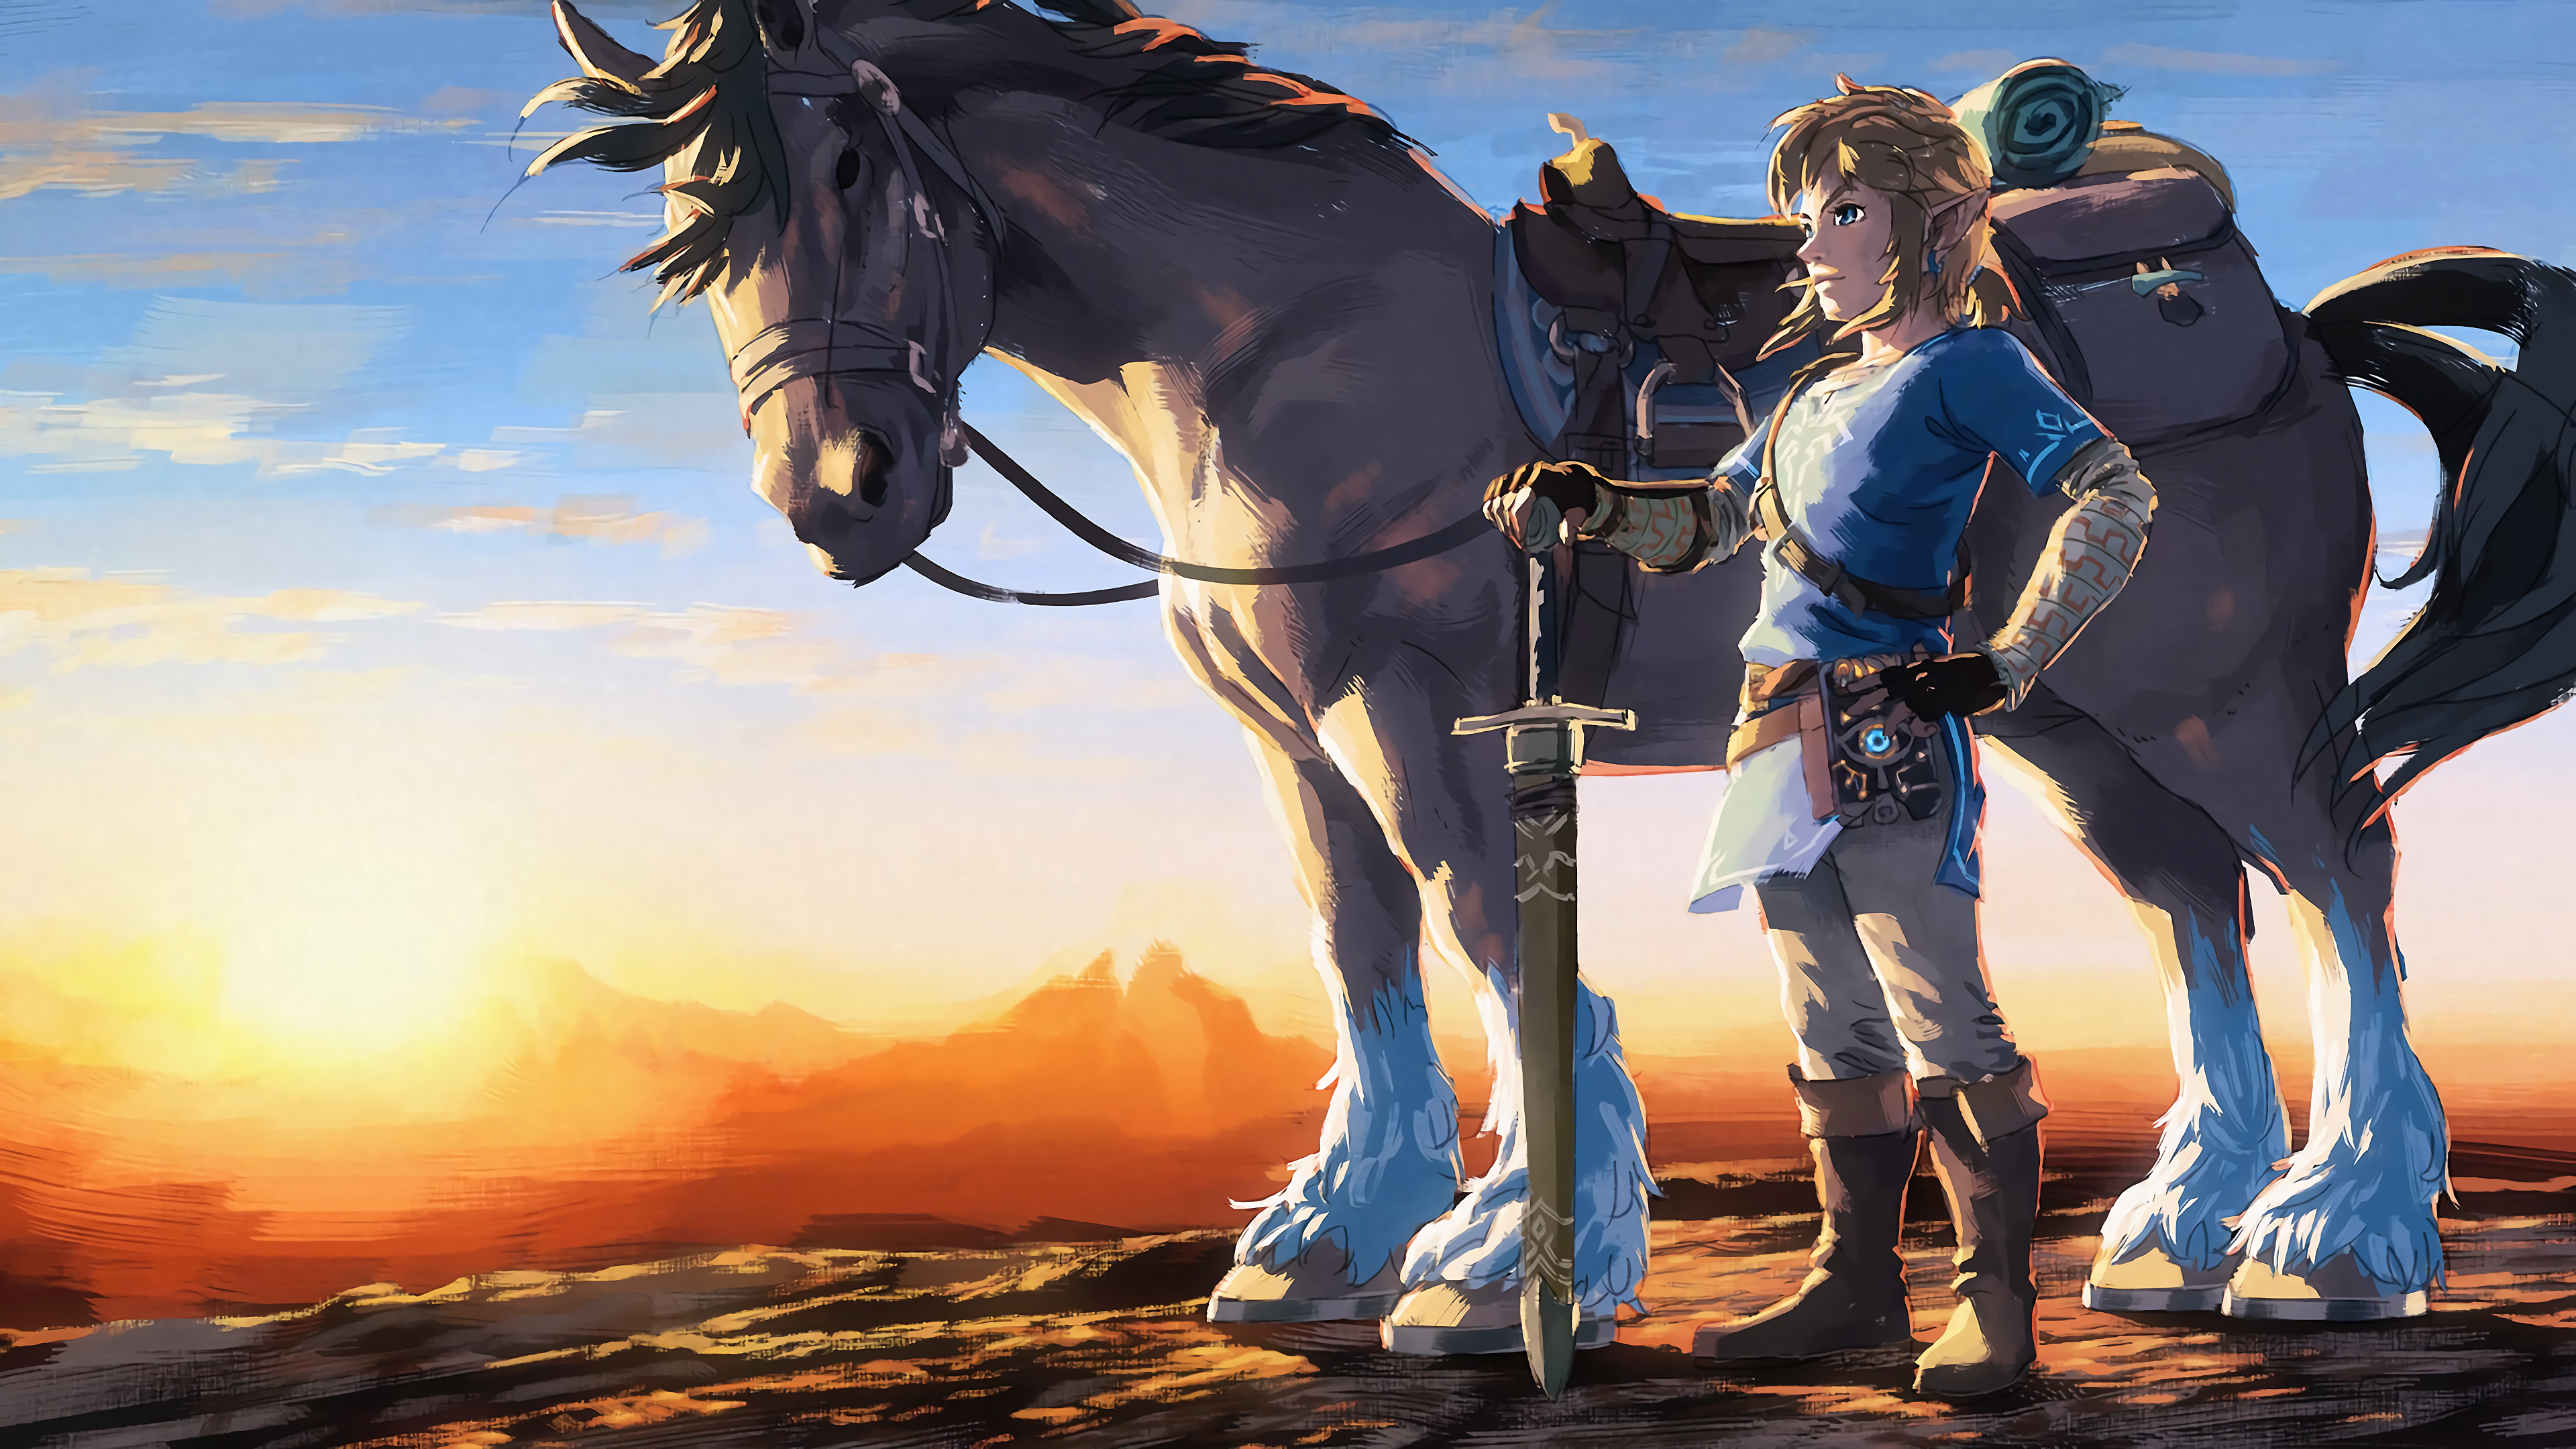 Wii U Screen Savers : The legend of zelda breath wild k ultra fond d